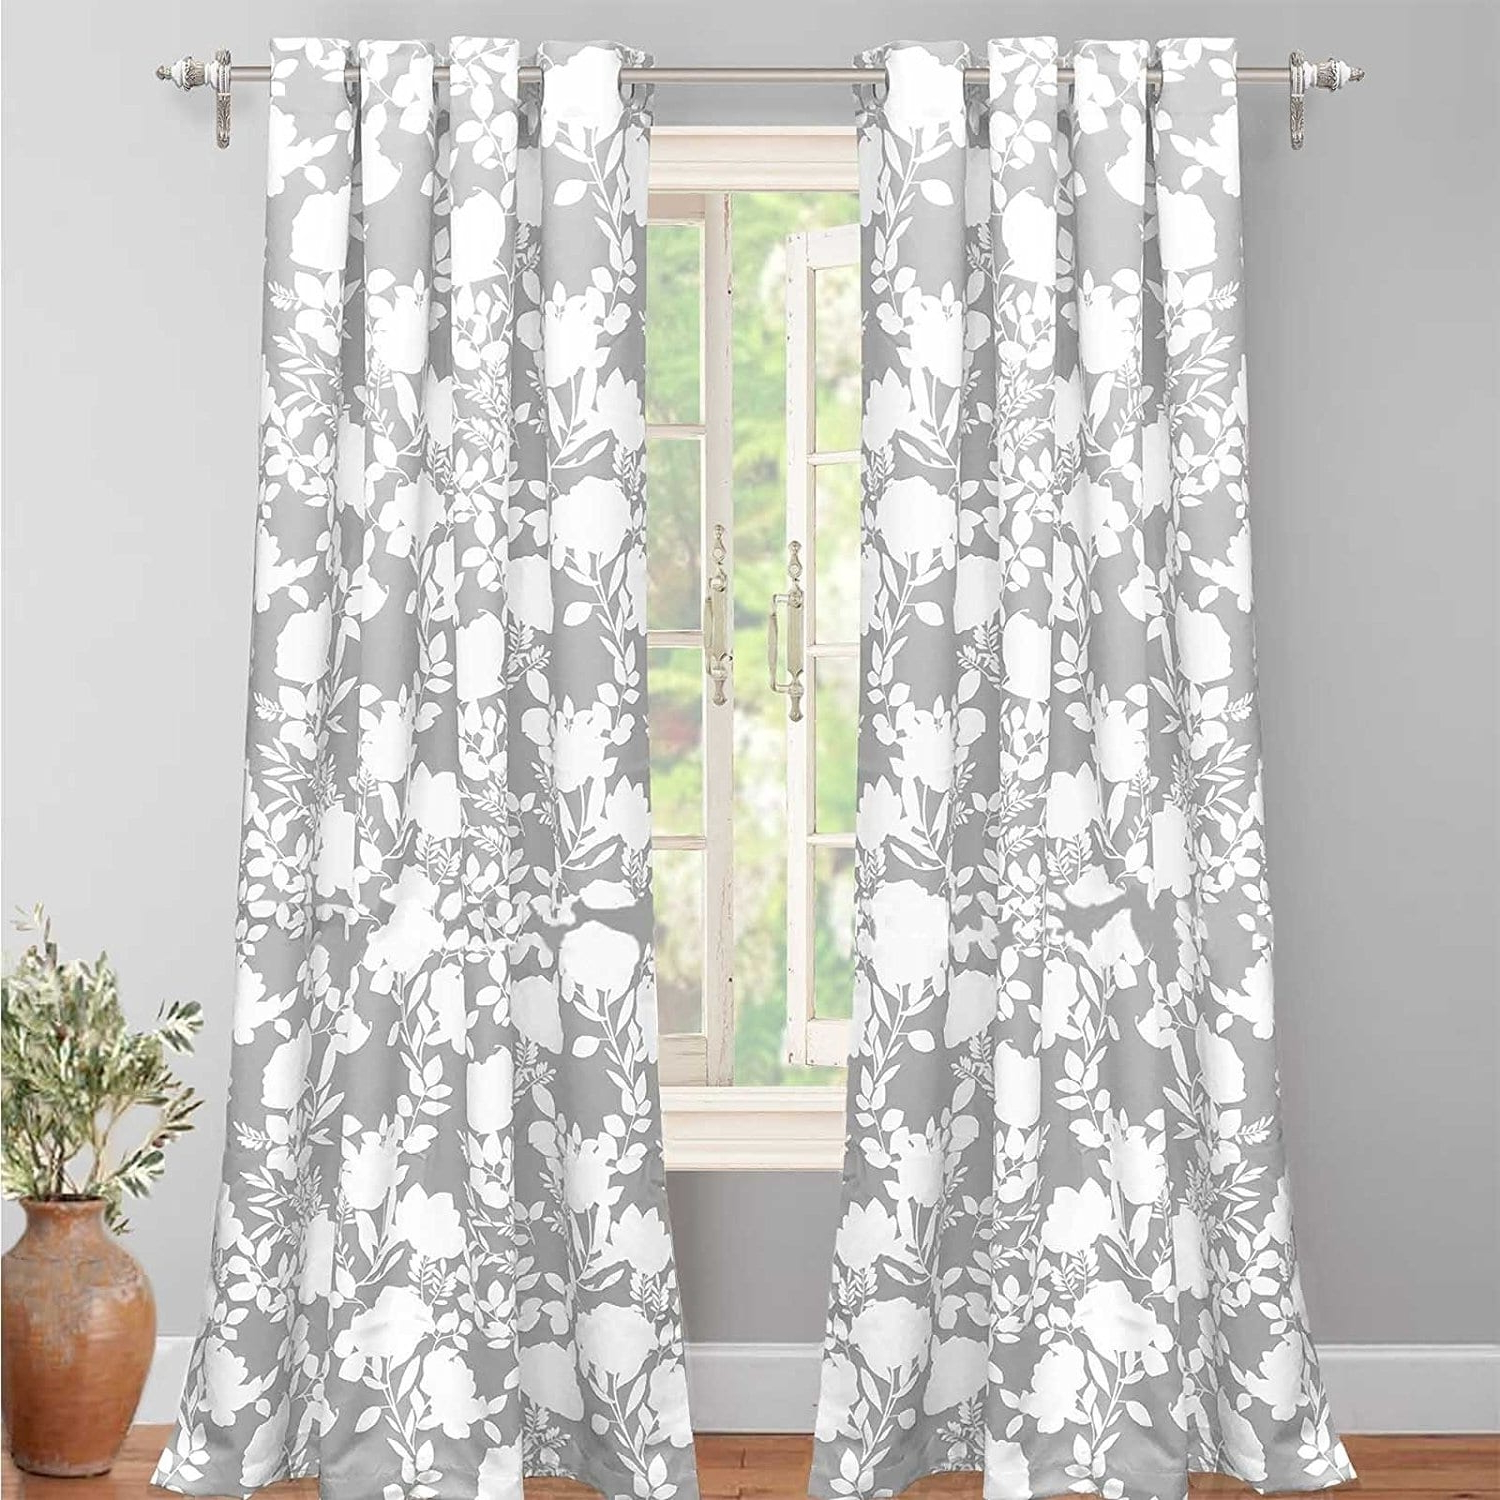 Driftaway Floral Delight Room Darkening Window Curtain Panel With Most Up To Date Room Darkening Window Curtain Panel Pairs (View 17 of 20)